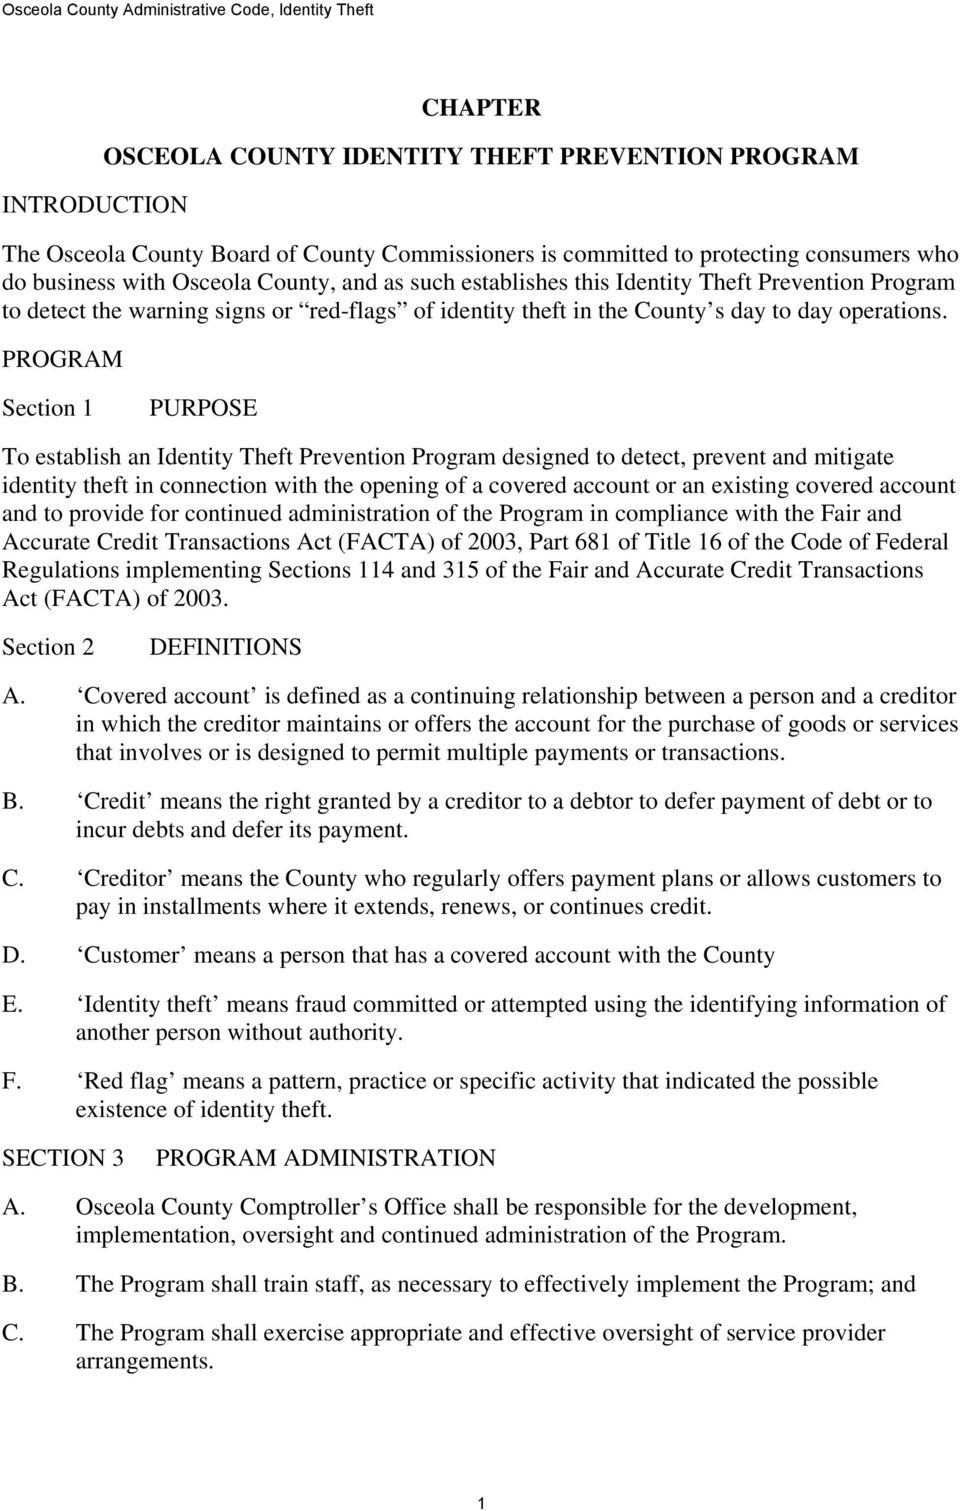 PROGRAM Section 1 PURPOSE To establish an Identity Theft Prevention Program designed to detect, prevent and mitigate identity theft in connection with the opening of a covered account or an existing